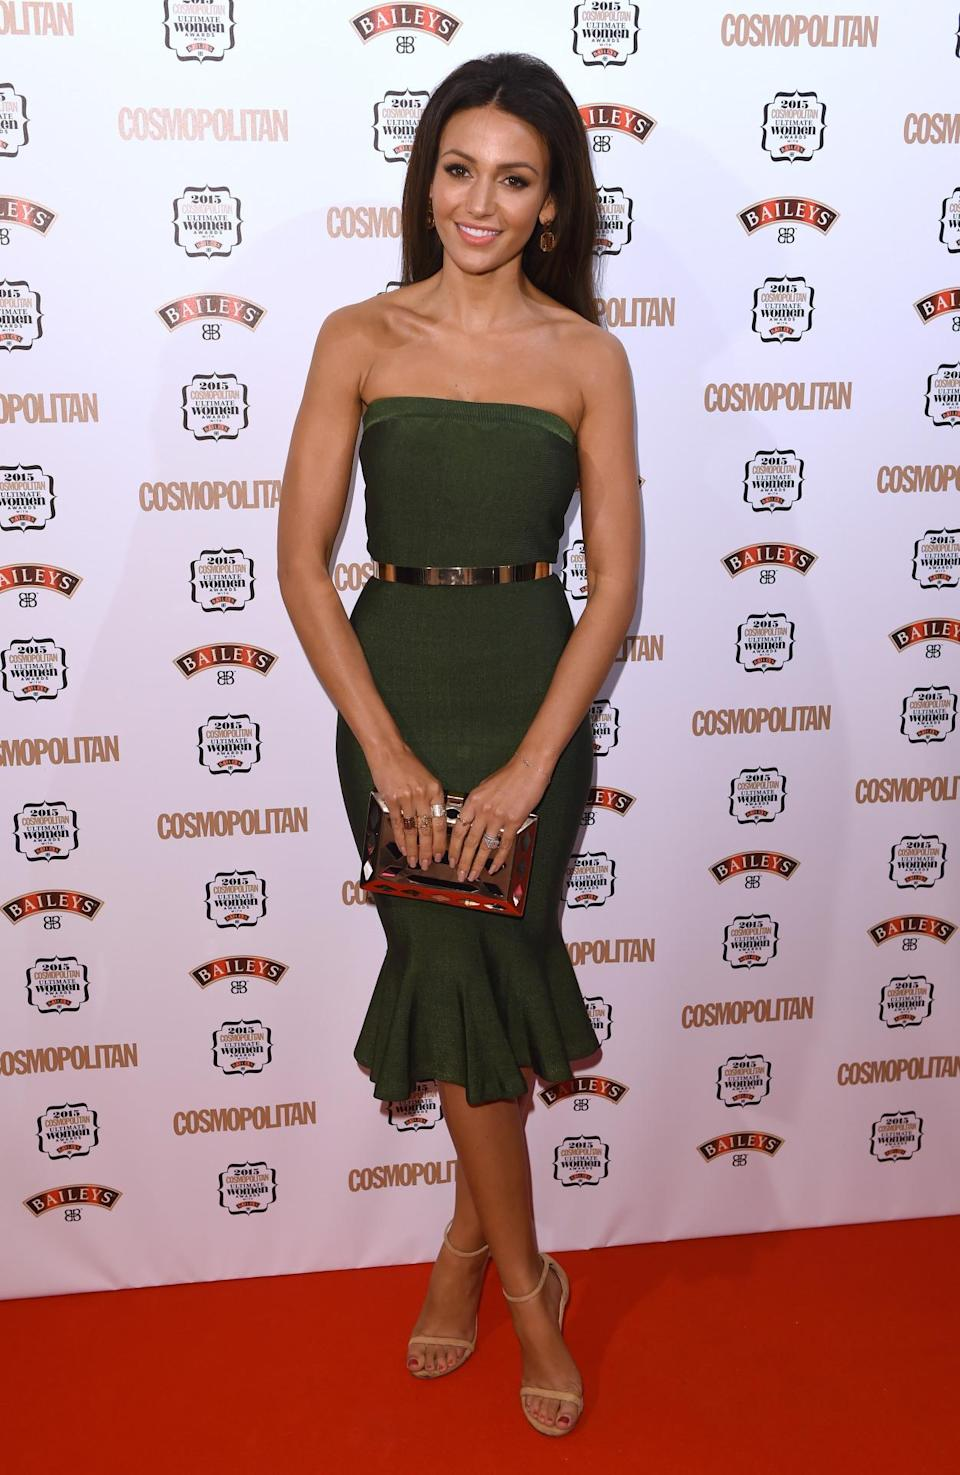 Michelle Keegan dressed her petite frame in an olive green strapless dress, featuring a fishtail skirt. [Photo: Rex]